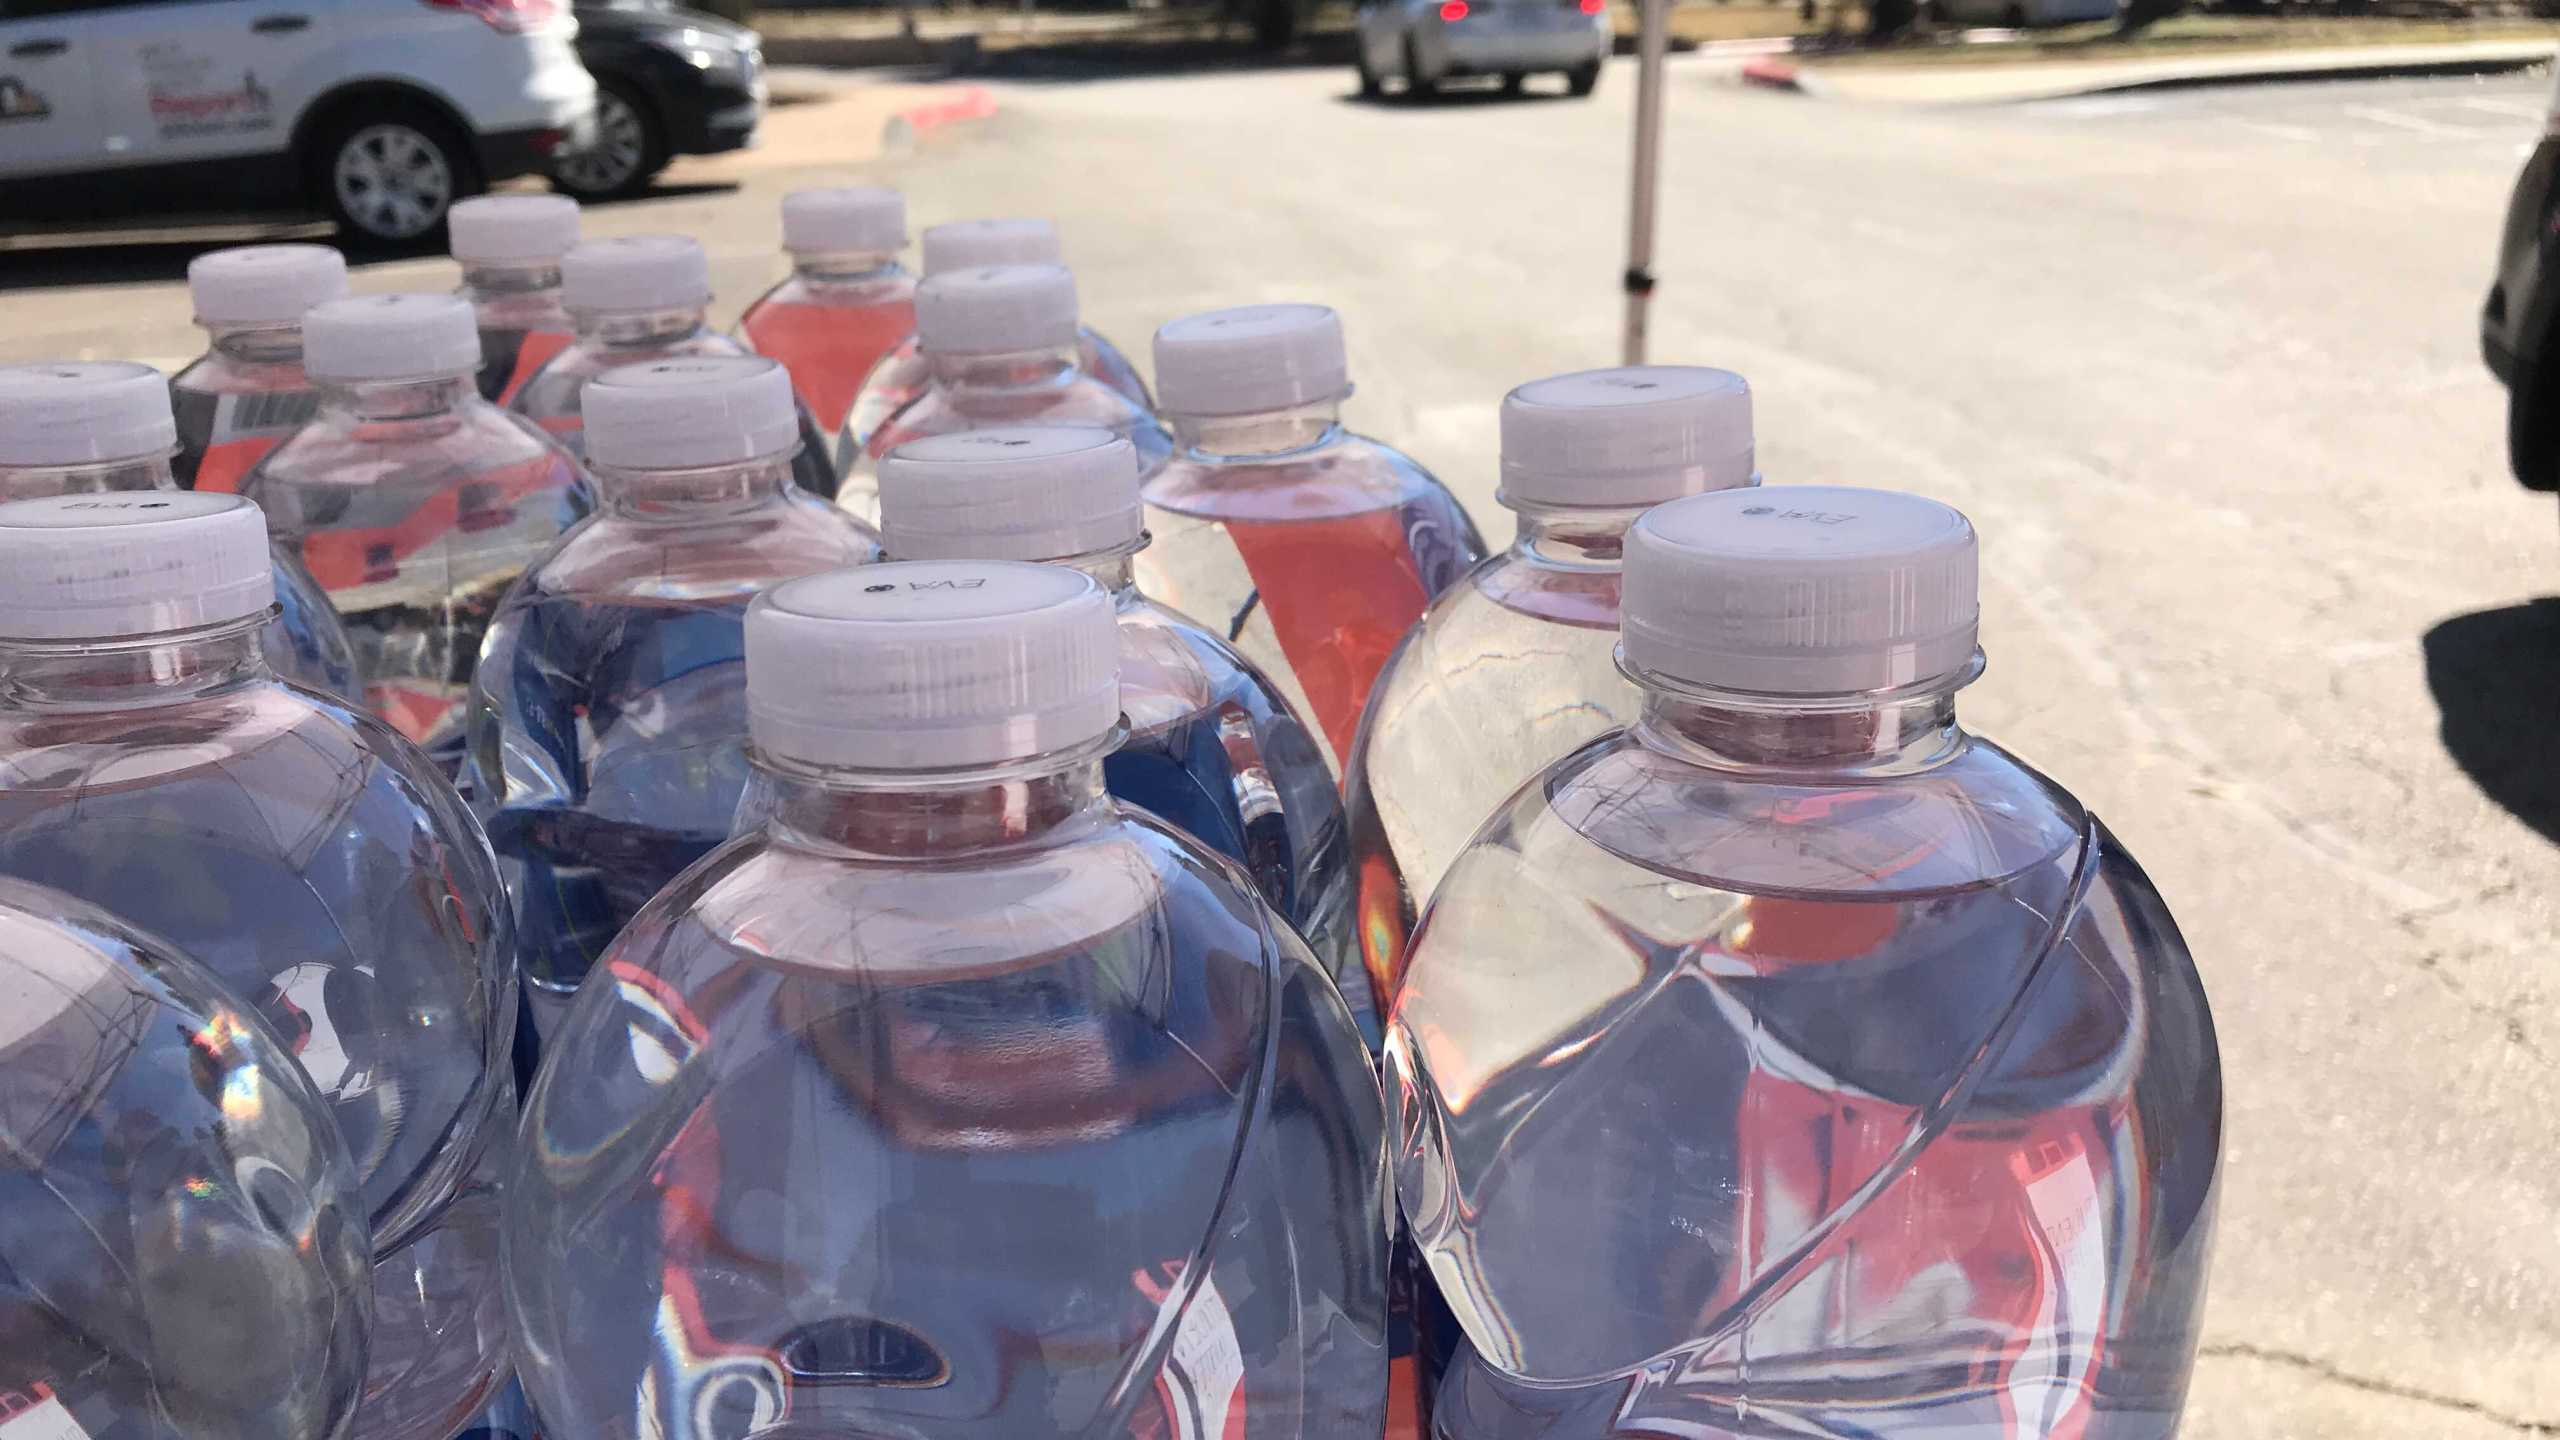 University of Texas New Student Services distributing bottled water at The Vibe Apartments Feb. 22, 2021 (KXAN/Ed Zavala)